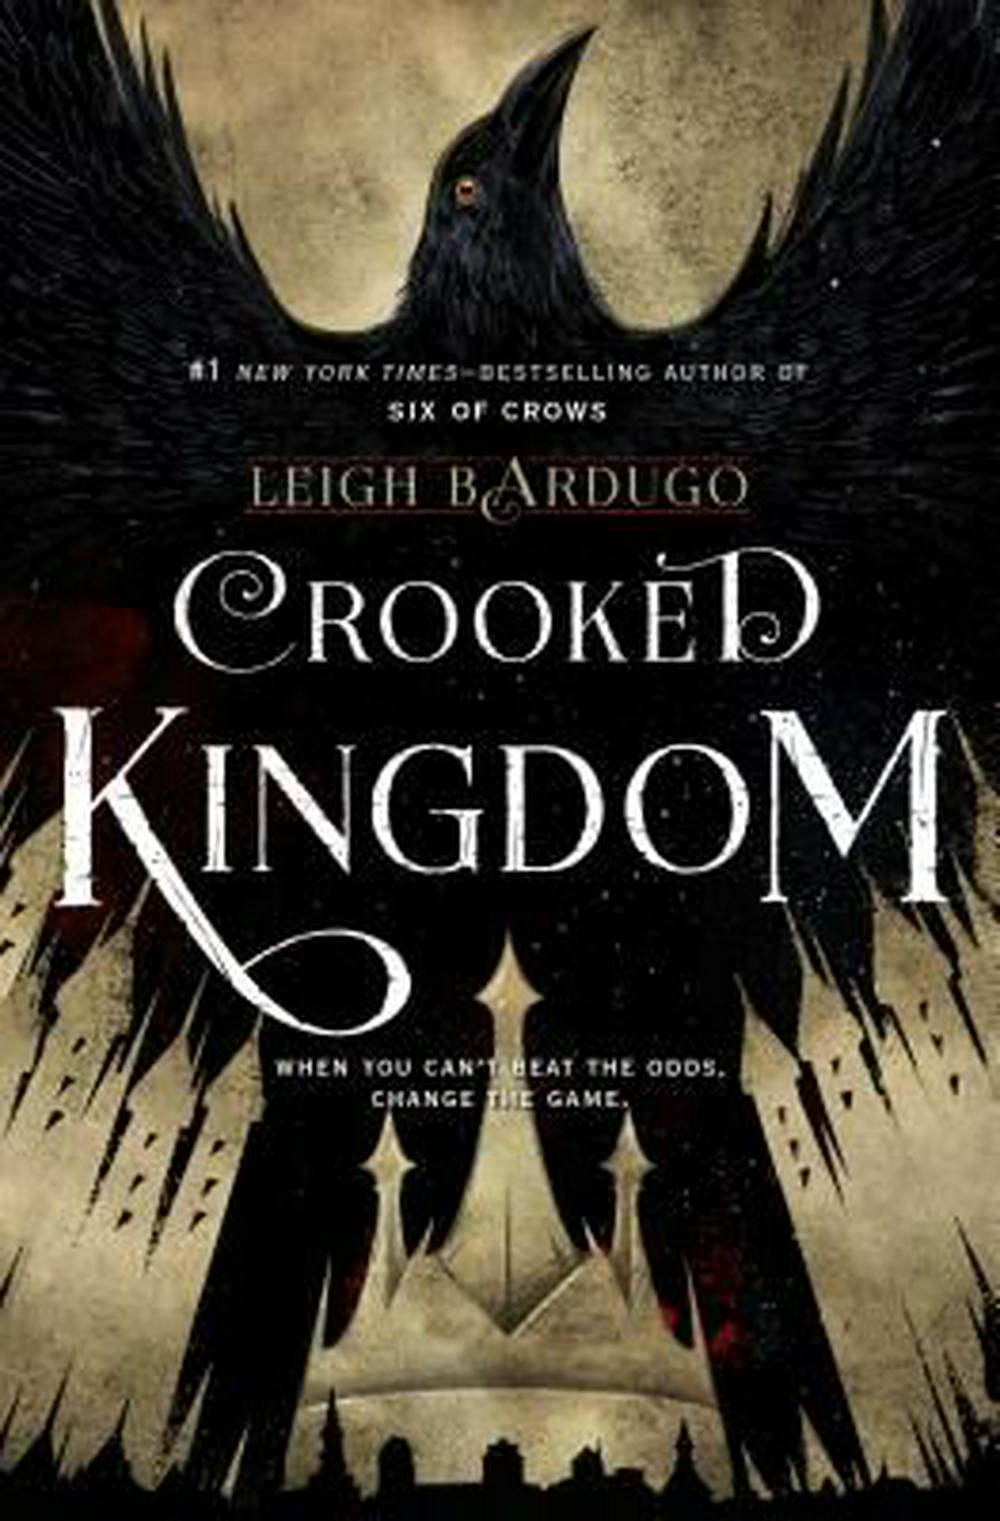 Crooked KingdomA Sequel to Six of Crows